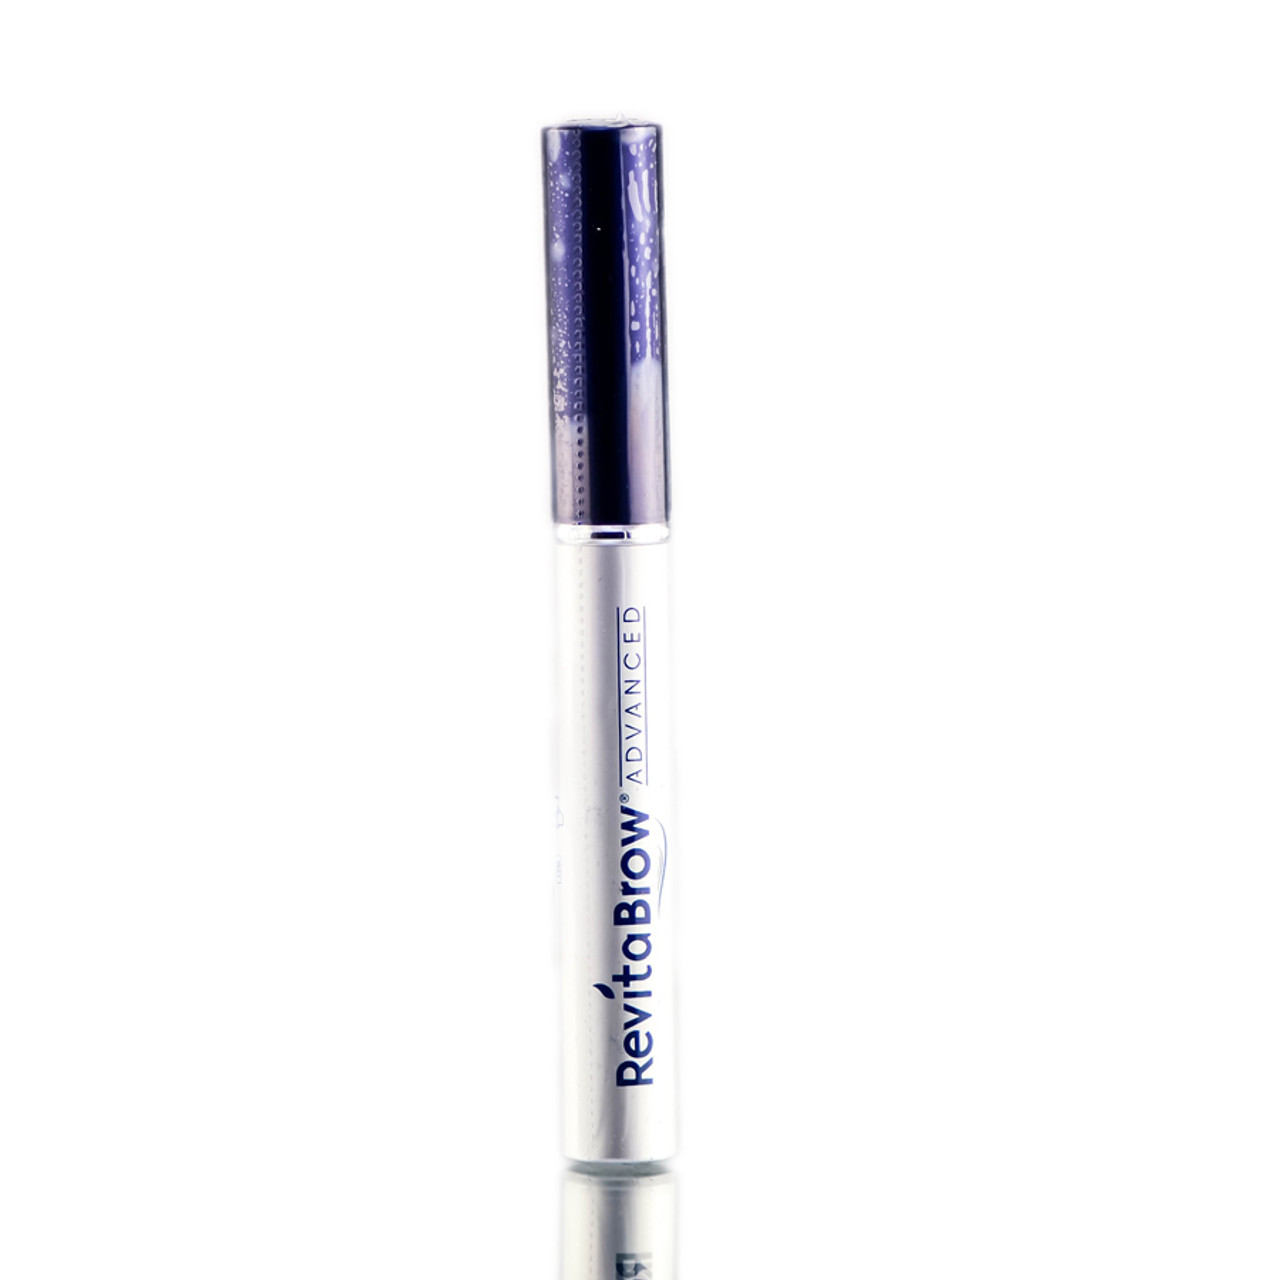 Revitalash Revita Brow Advanced Eyebrow Conditioner Sleekshop